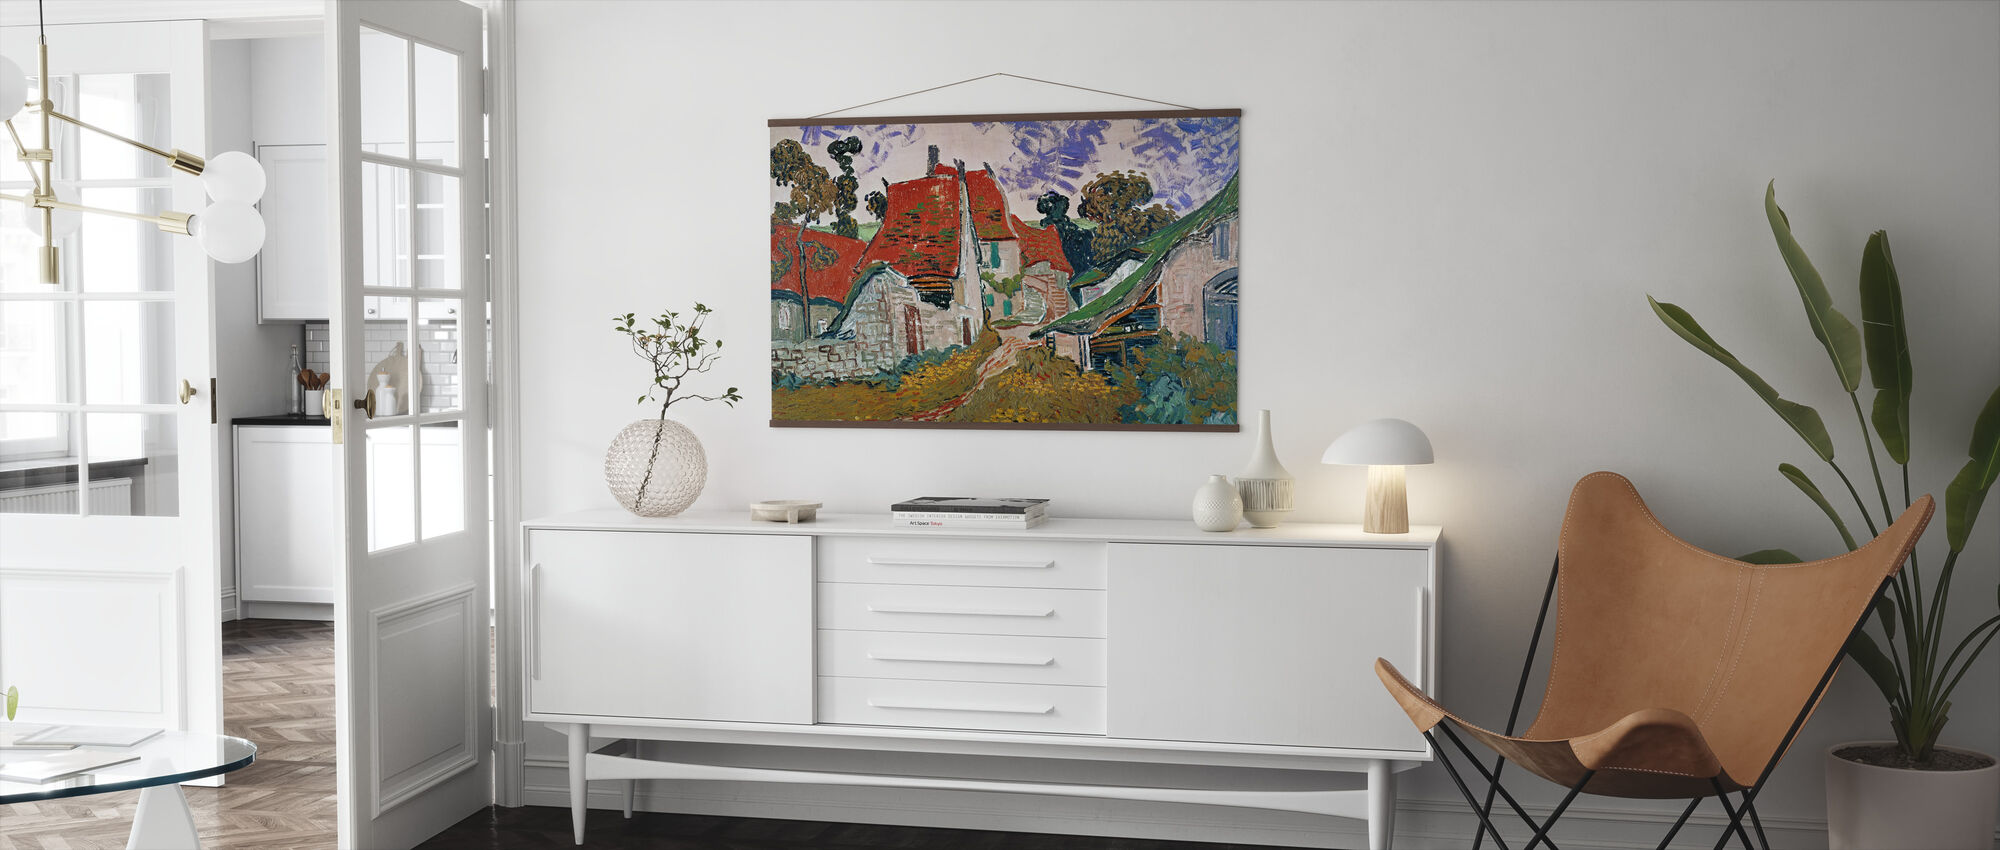 Wheatfield with Crows - Vincent Van Gogh - Poster - Living Room